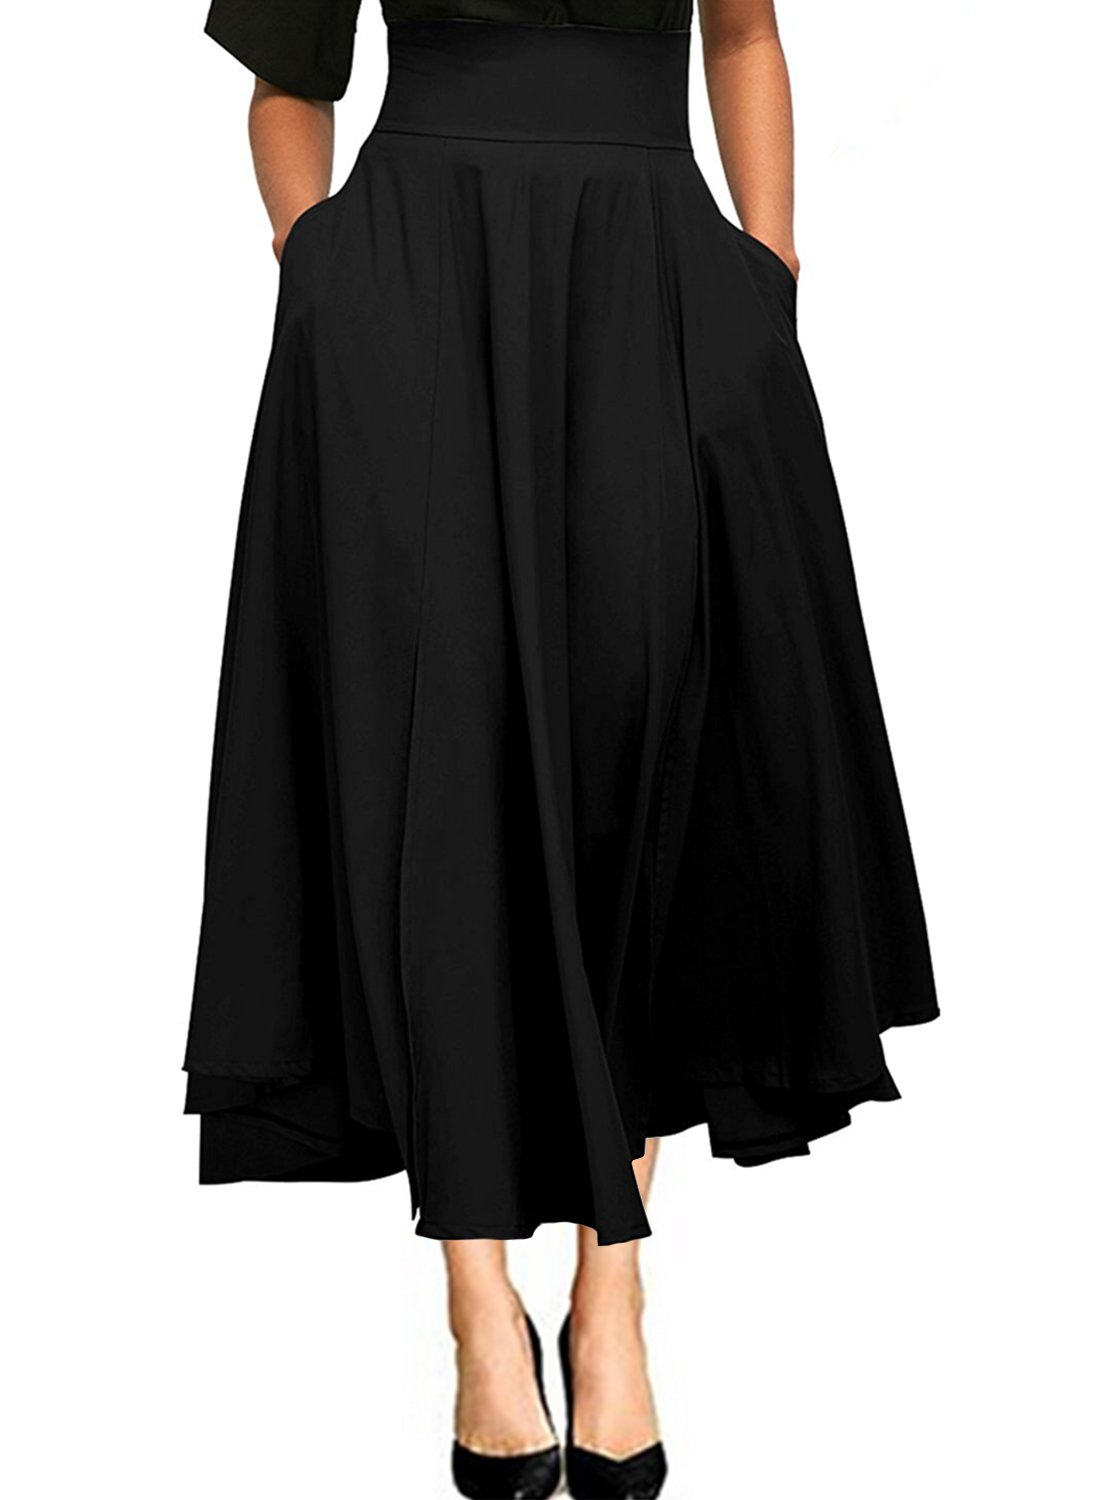 Ranphee High Waist Maxi Skirt Women Solid A-Line Pleated Belted Casual Long Skirt with Pockets